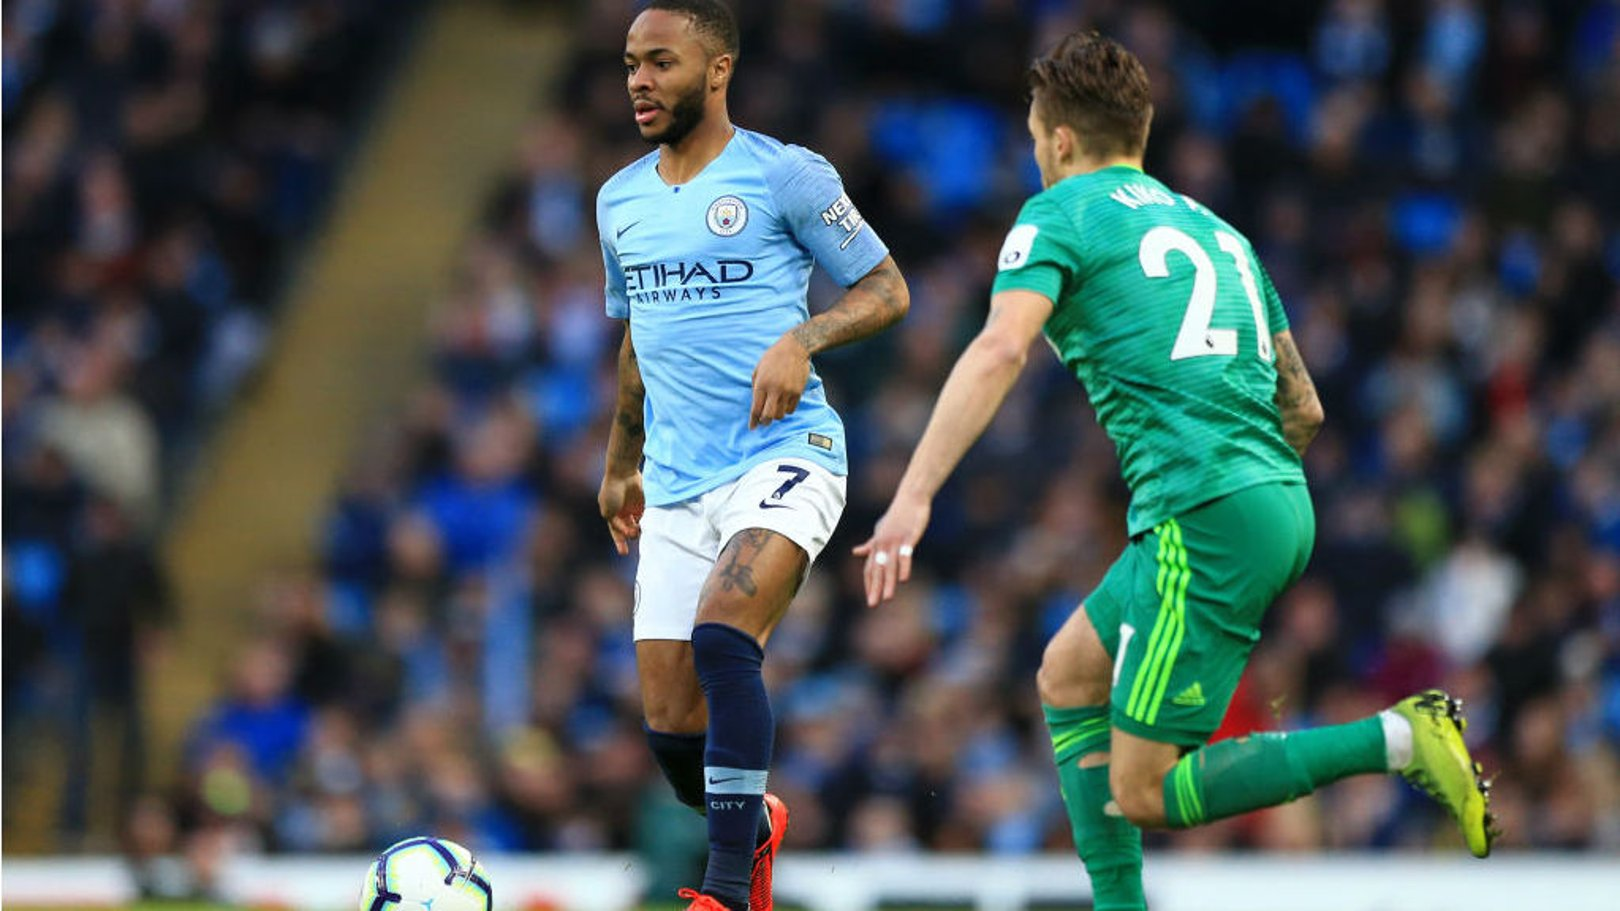 RAZZLE DAZZLE: Raheem Sterling gets City on the front foot